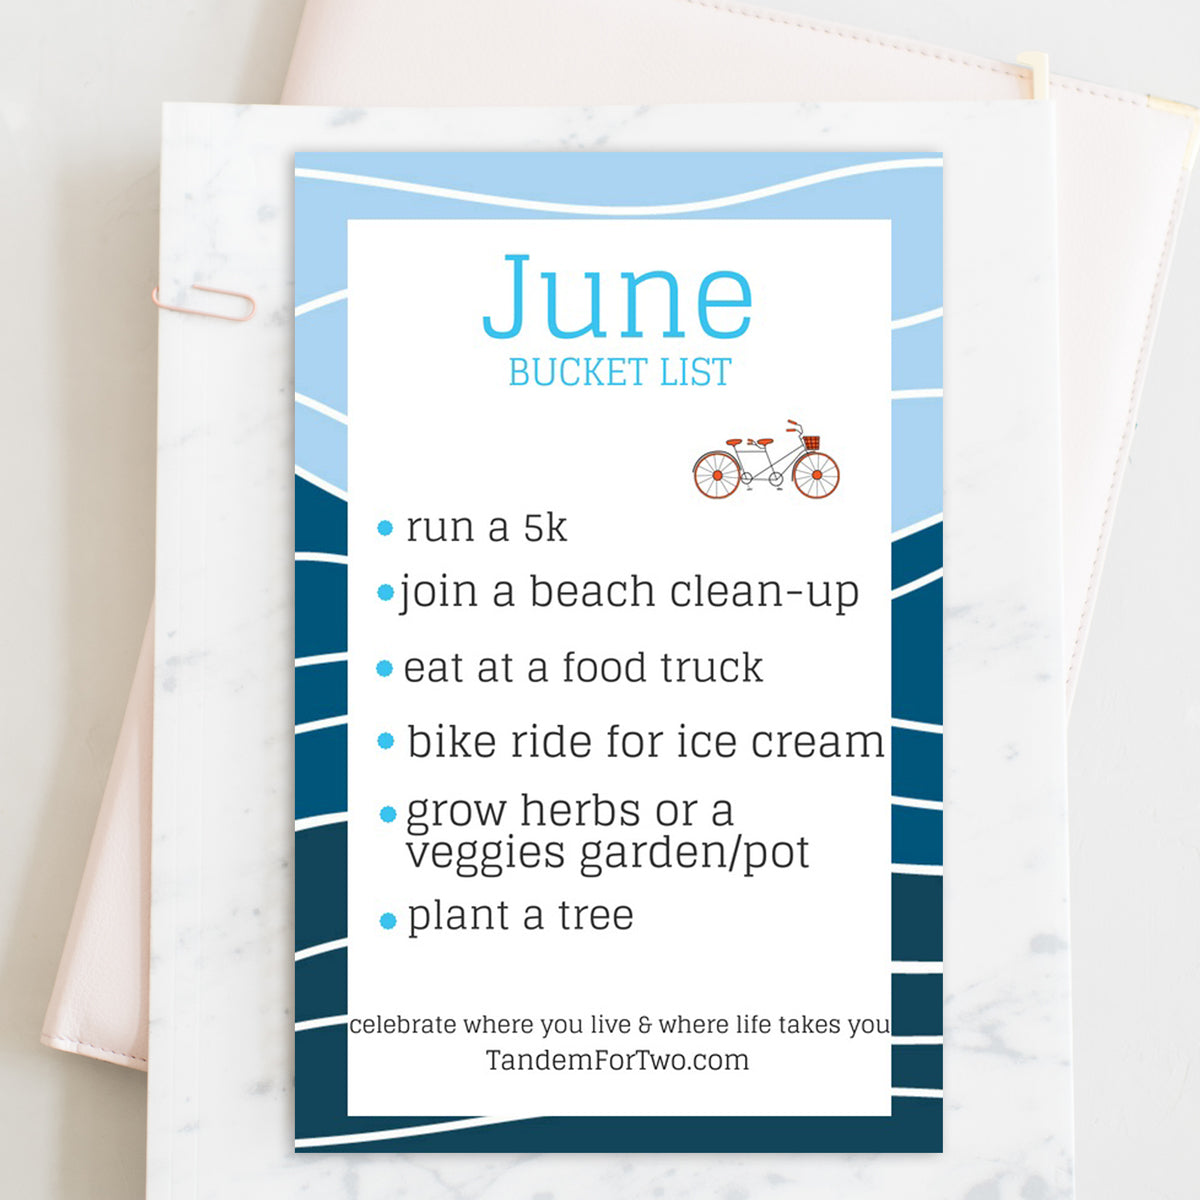 June Bucket List from Tandem For Two